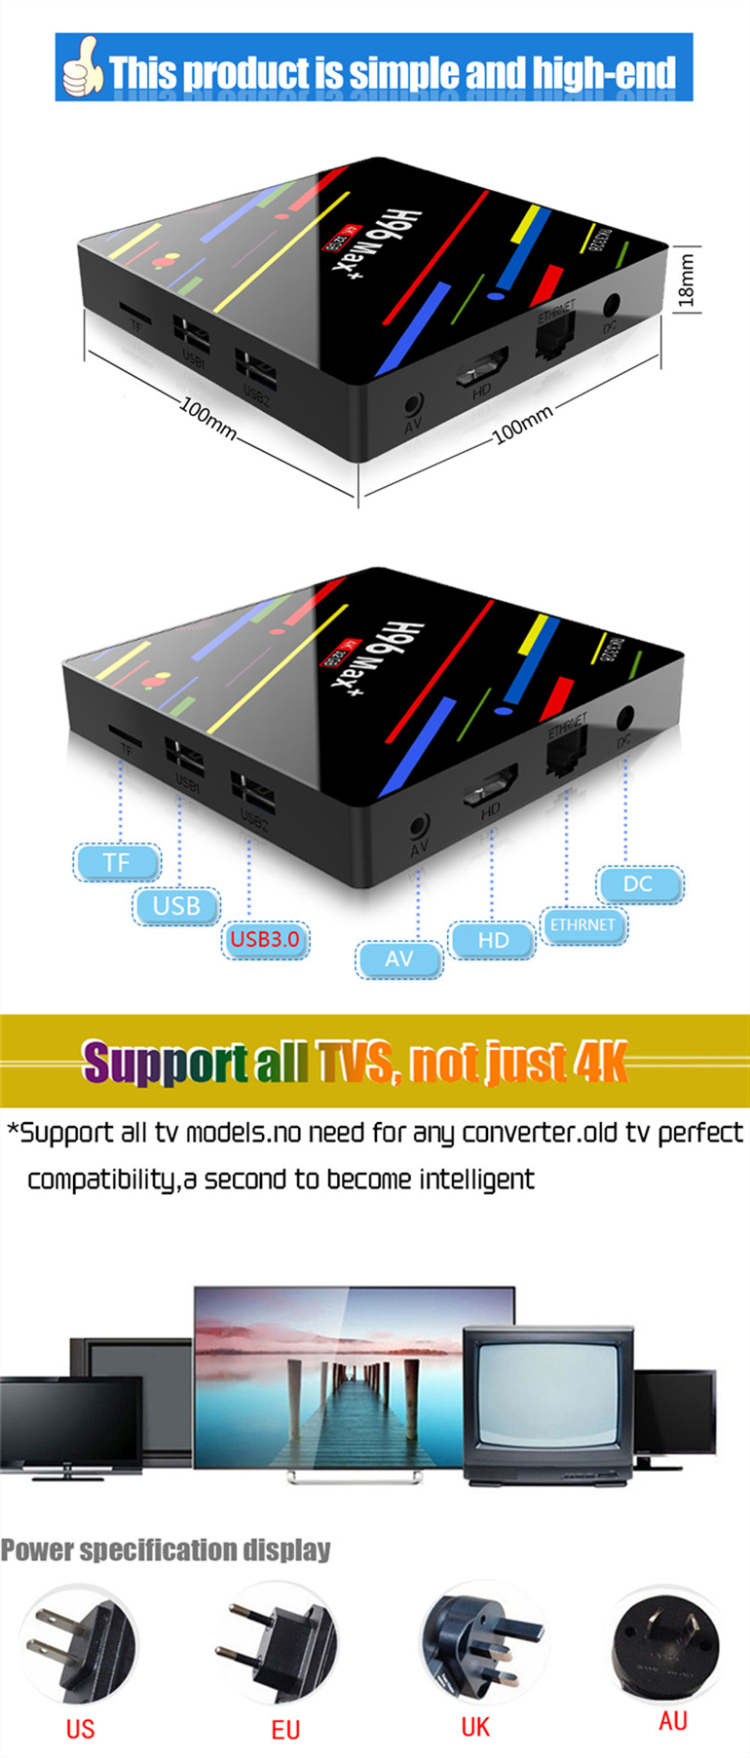 Rockchip 3328 Quad Core 4K @ 60 fps H96 Max+ Network Smart TV Box OEM/ODM Android TV Box